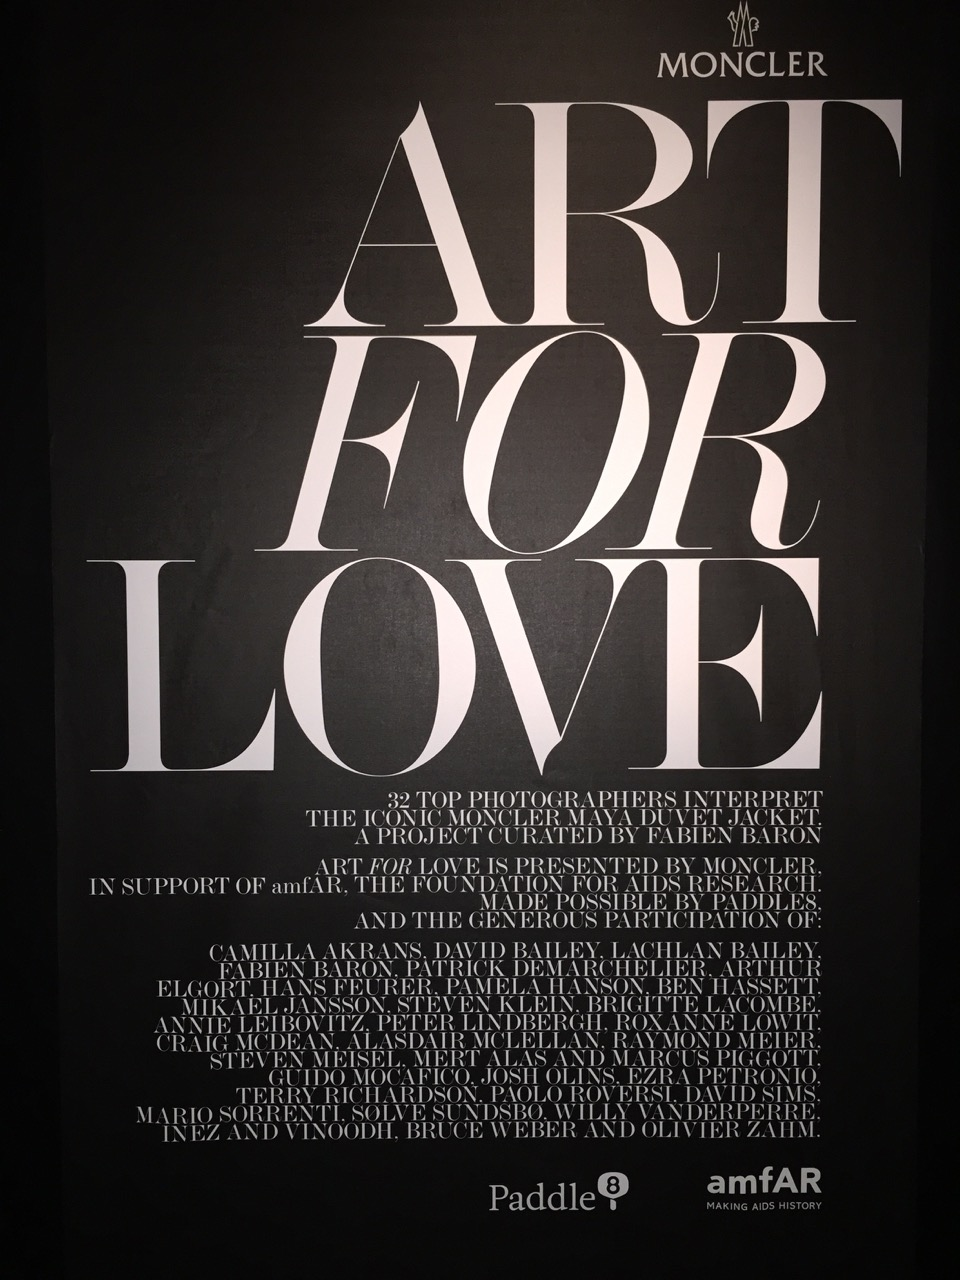 Moncler - Art for Love with amfAR at the New York Public Library